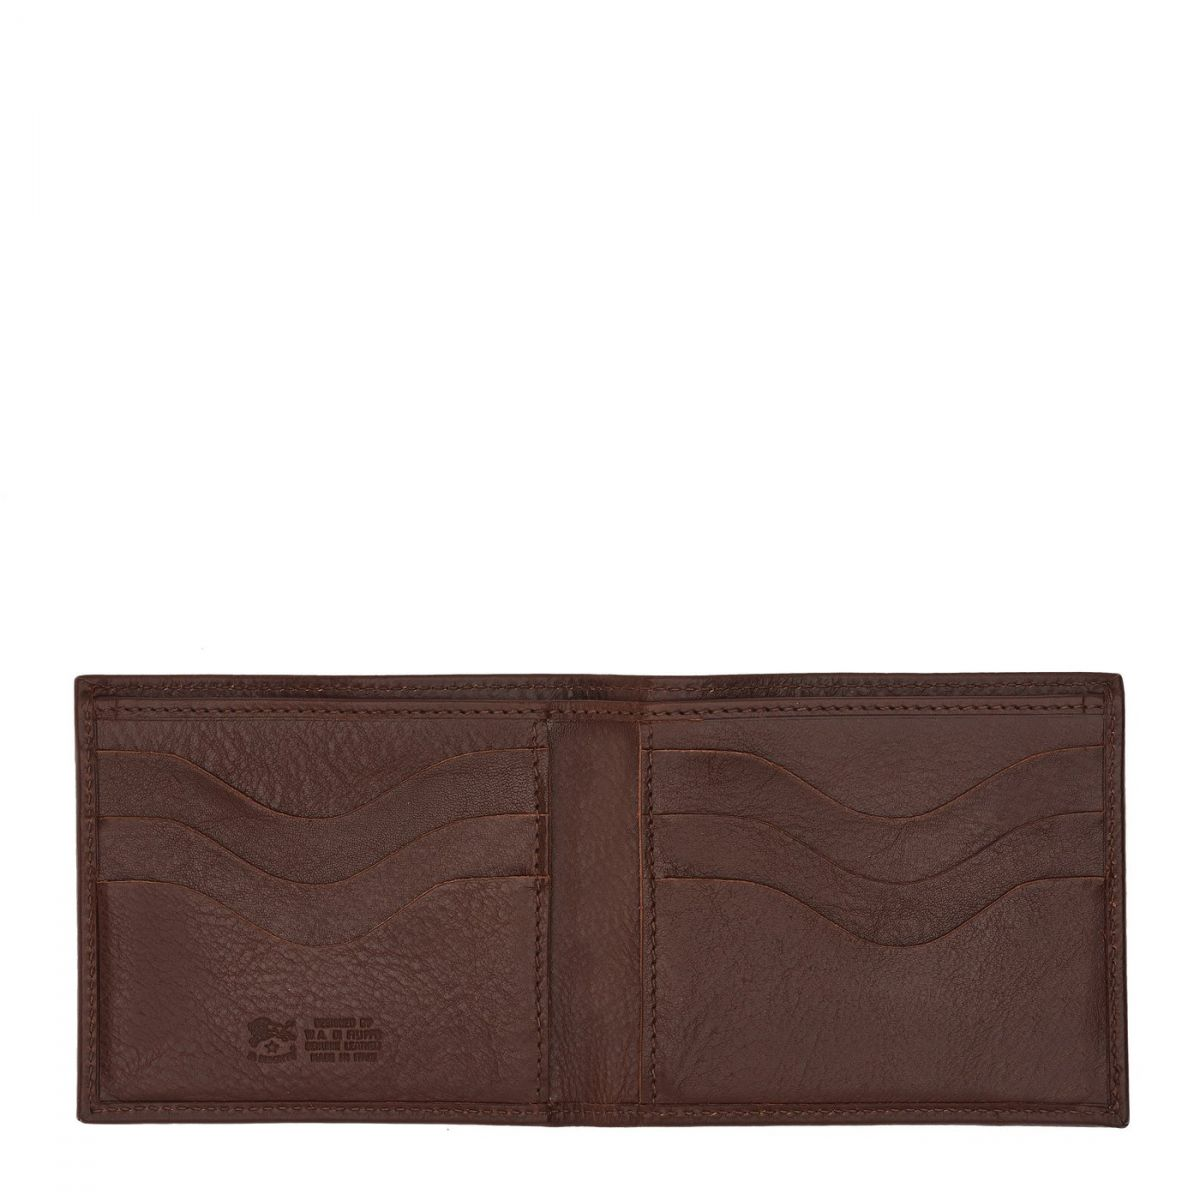 Men's Bi-Fold Wallet  in Cowhide Double Leather SBW029 color Brown | Details